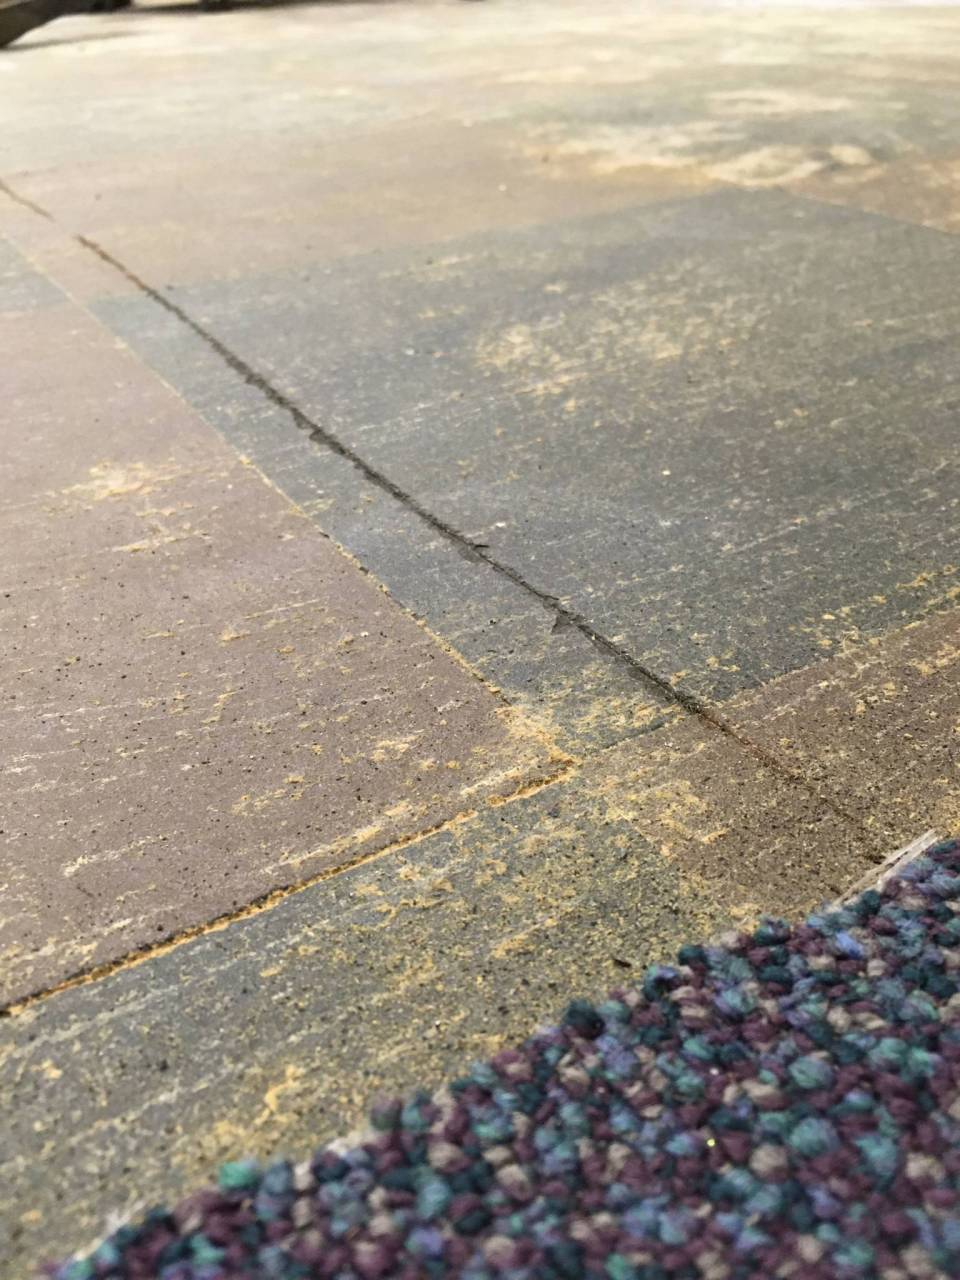 While we'd hoped the checkerboard subfloor could be revived, we'll settle for knowing this design element from the old shop is also underfoot in this new space...